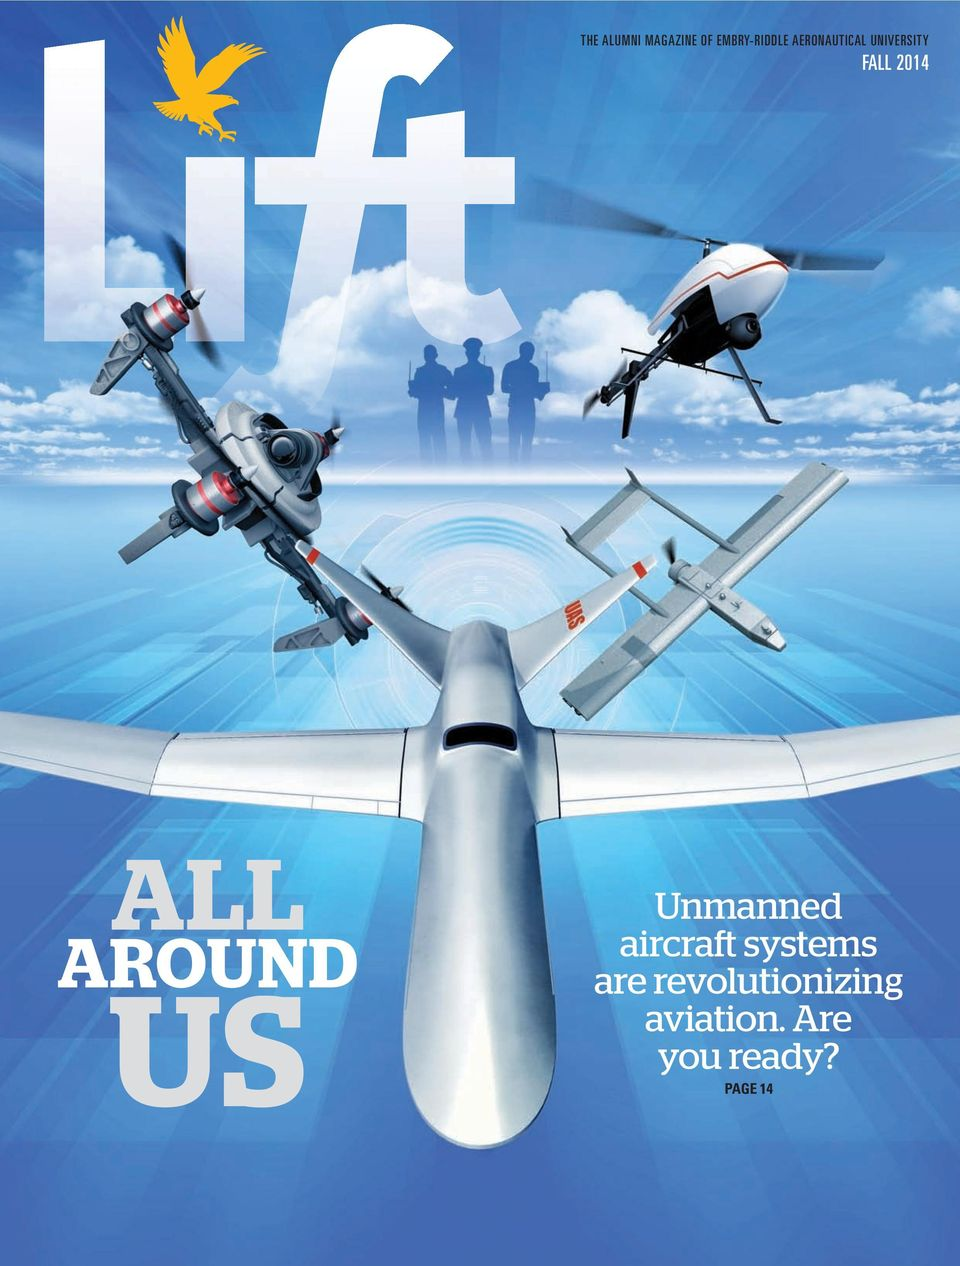 AROUND US Unmanned aircraft systems are